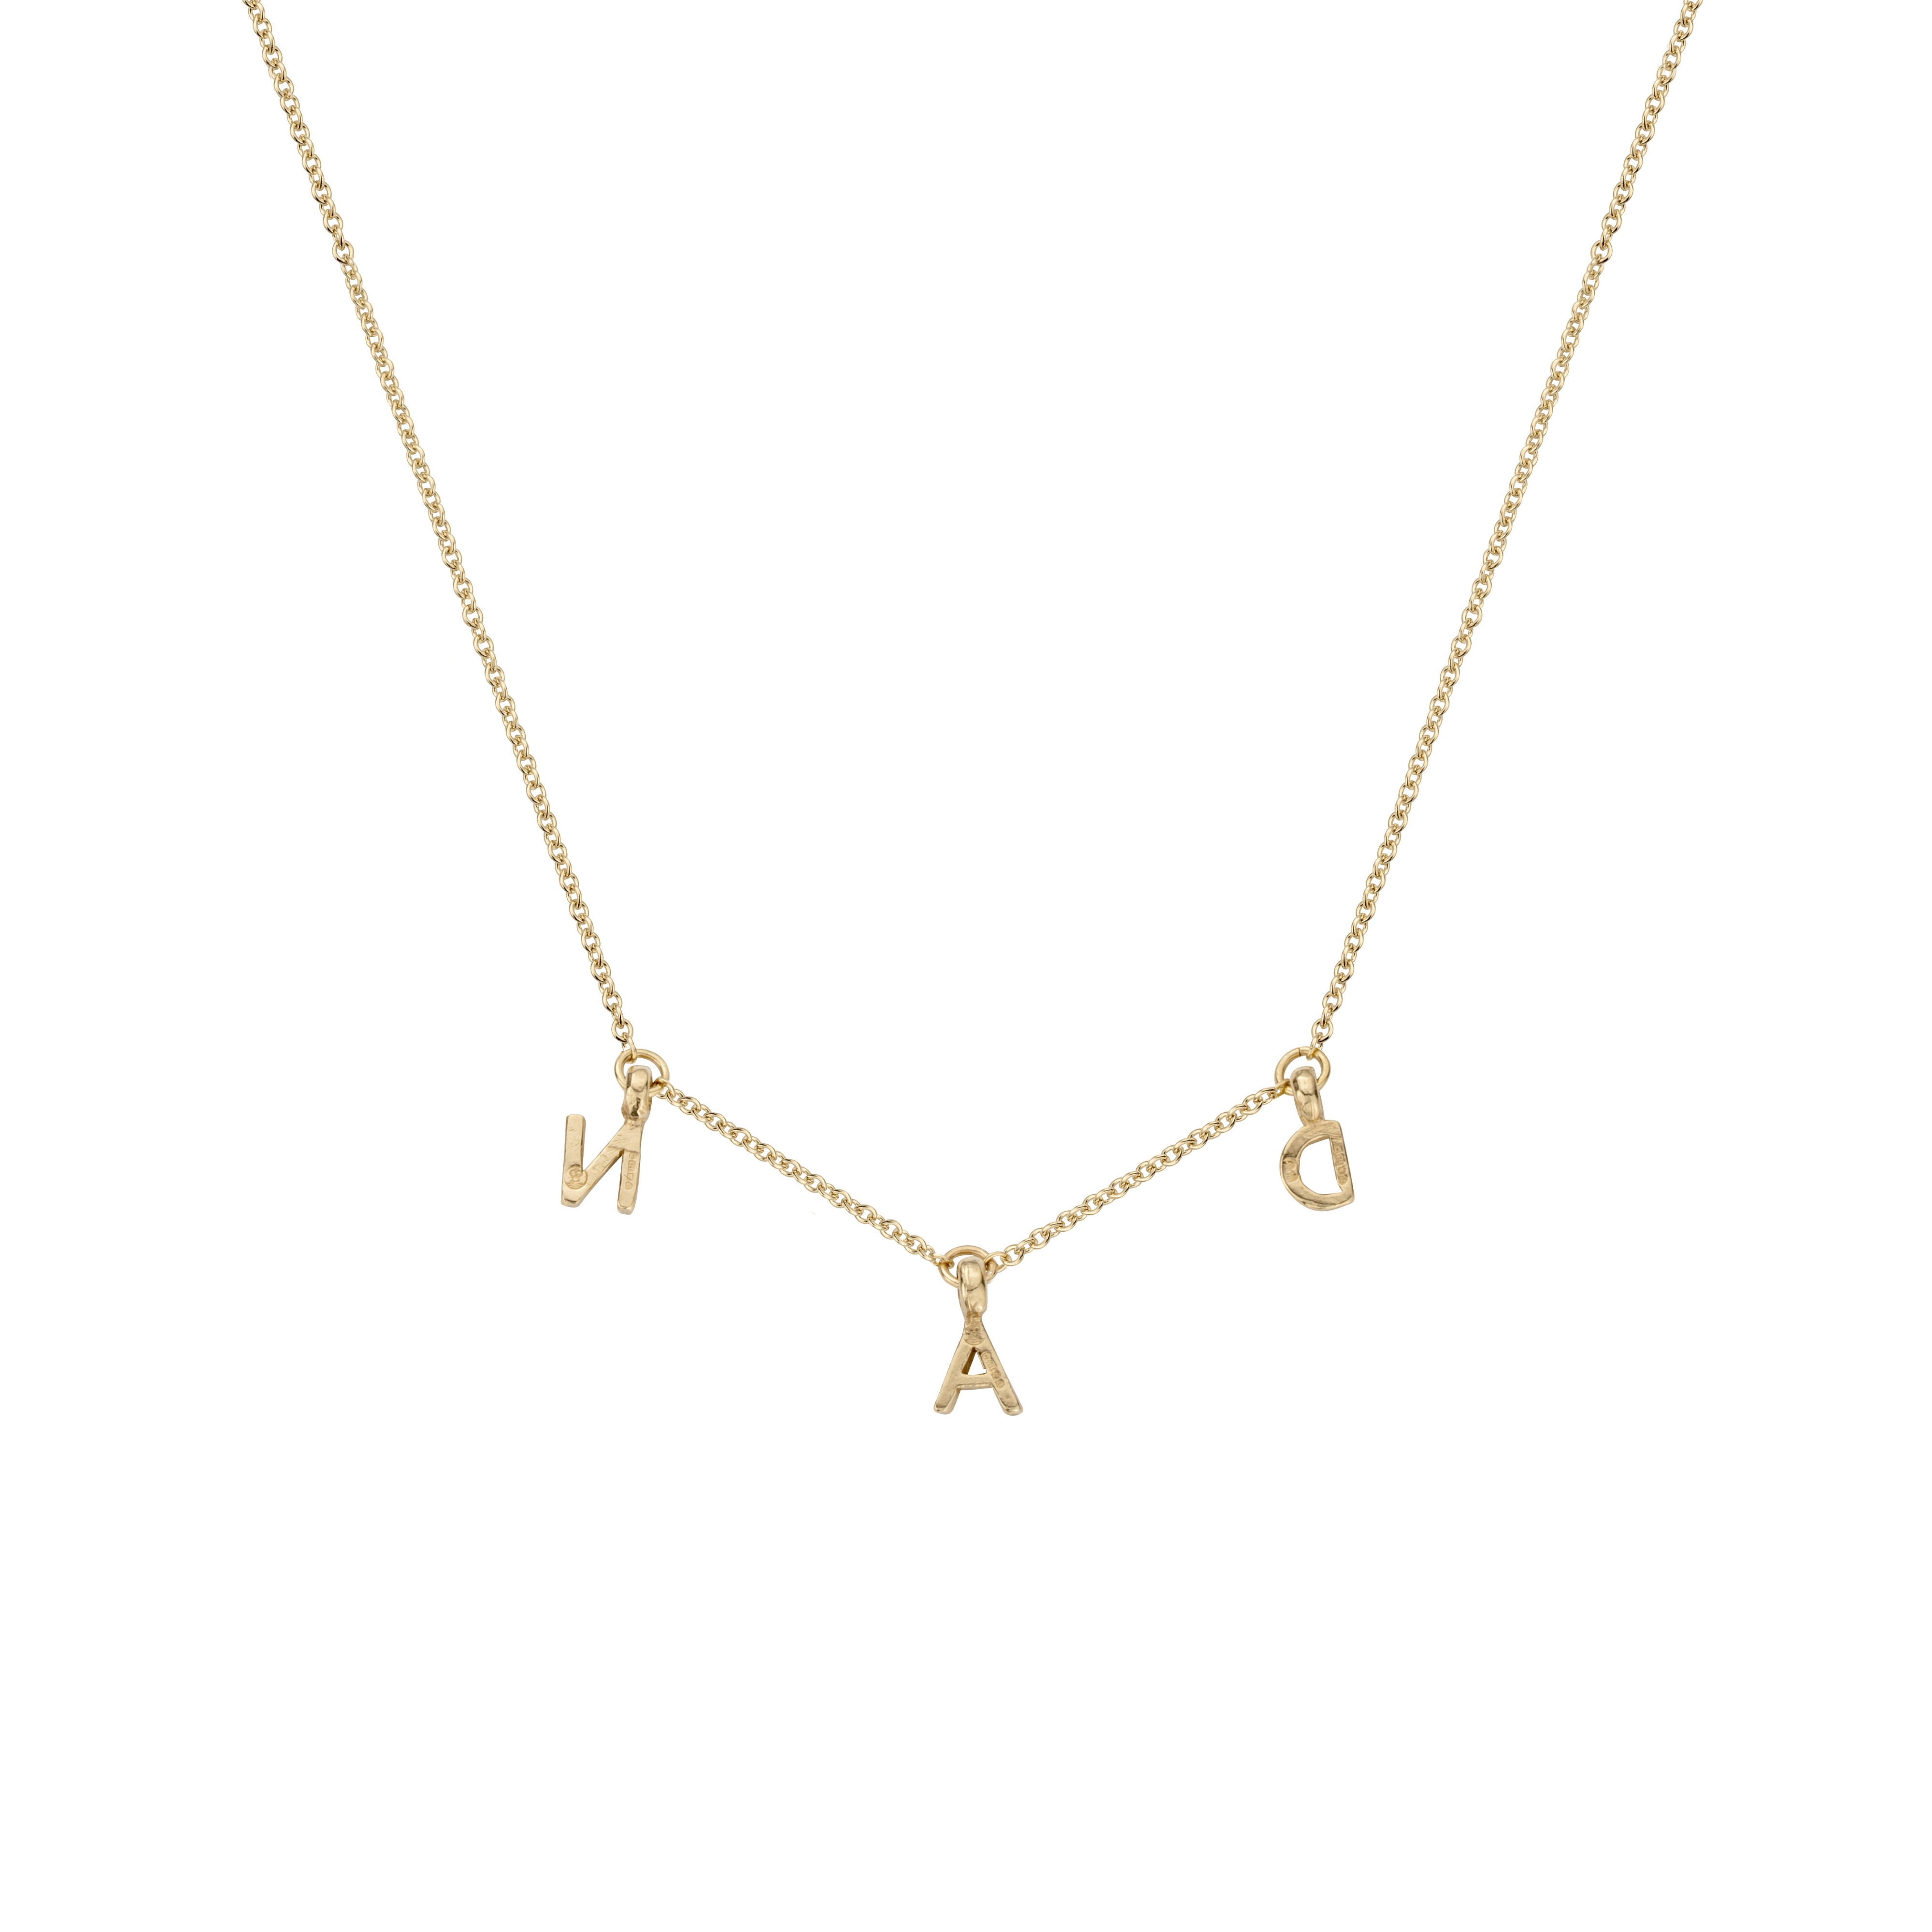 The Duchess of Cambridge was seen wearing Daniella Draper Gold Fixed Alphabet Necklace in May 2021 on the last day of the Scotland tour.